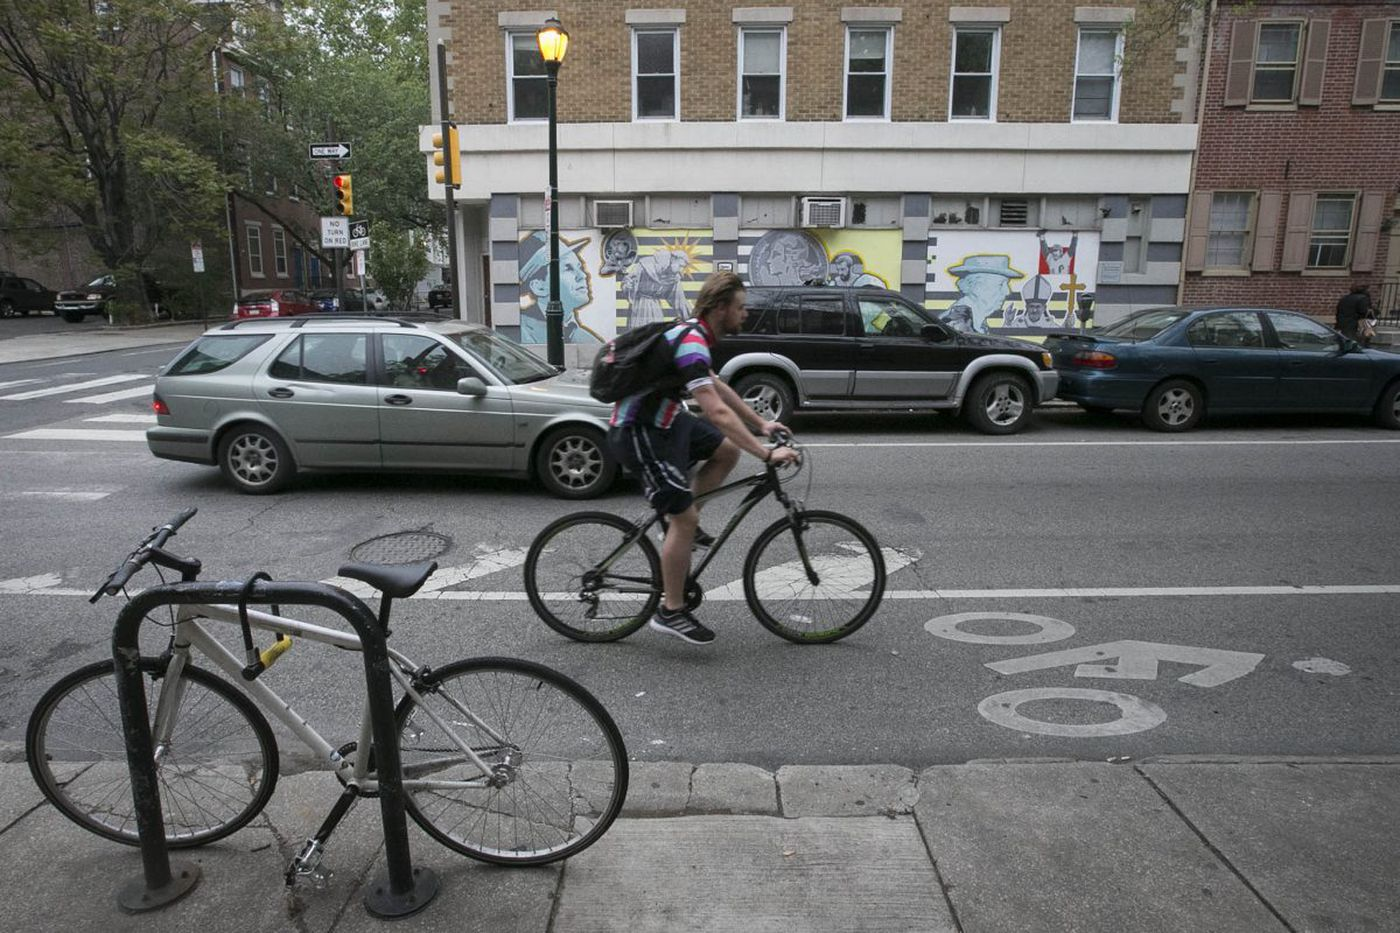 Bike lanes promote safety; time for Philly Council to see that   Editorial